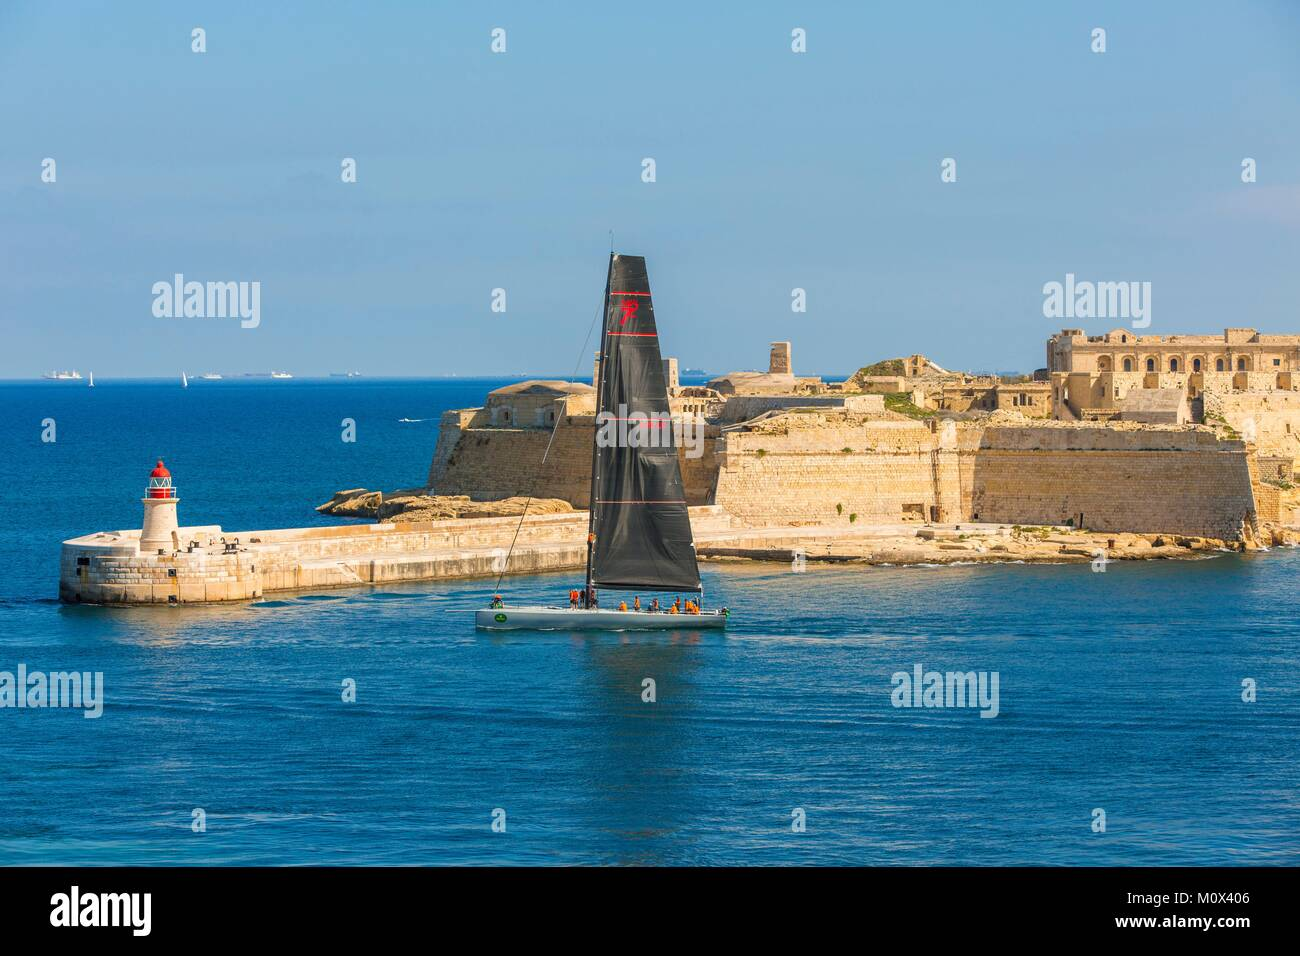 Malta,Valletta,listed as World Heritage by UNESCO,the entrance to Grand Harbour and fort Ricasoli - Stock Image